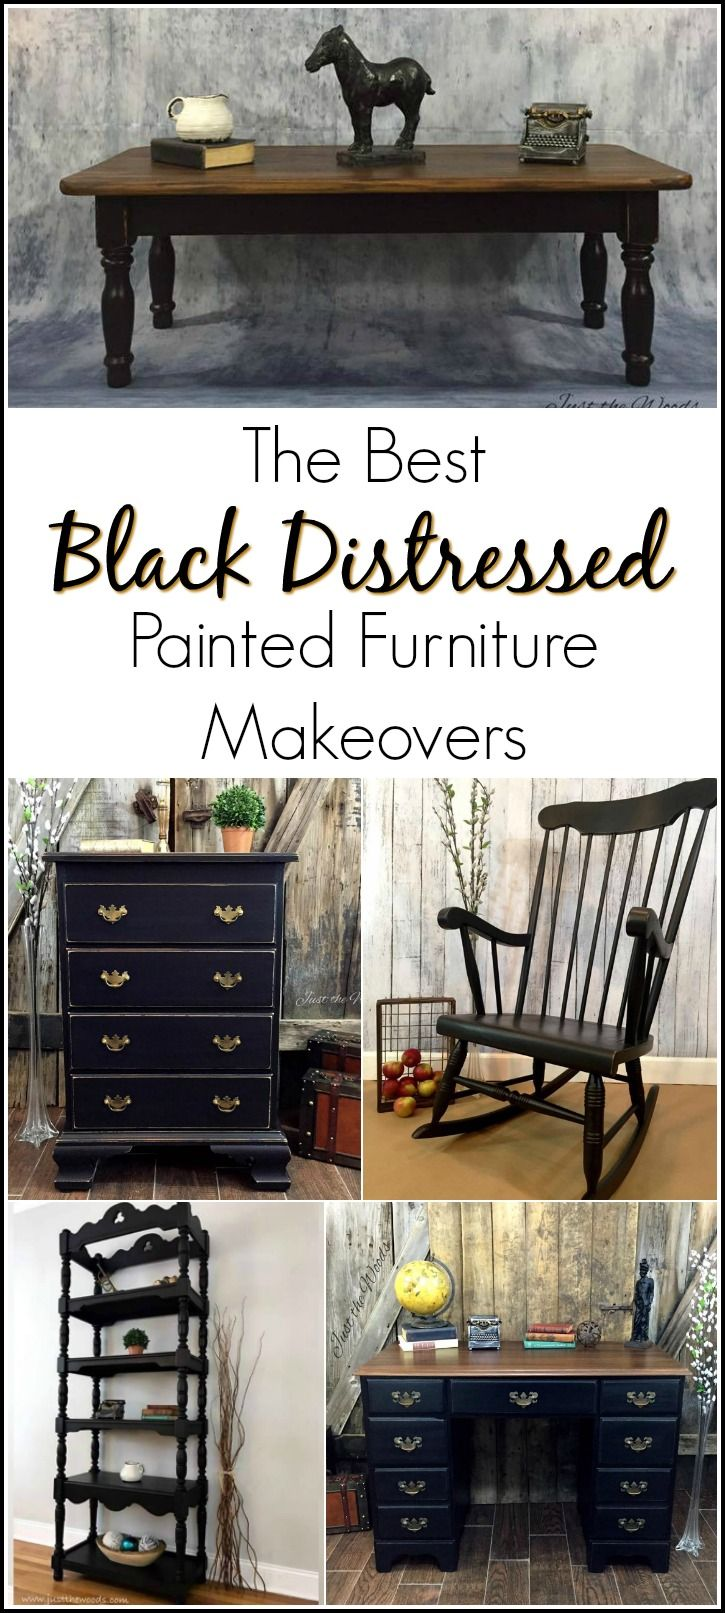 Painting furniture black distressed - The Best Black Distressed Painted Furniture Makeovers